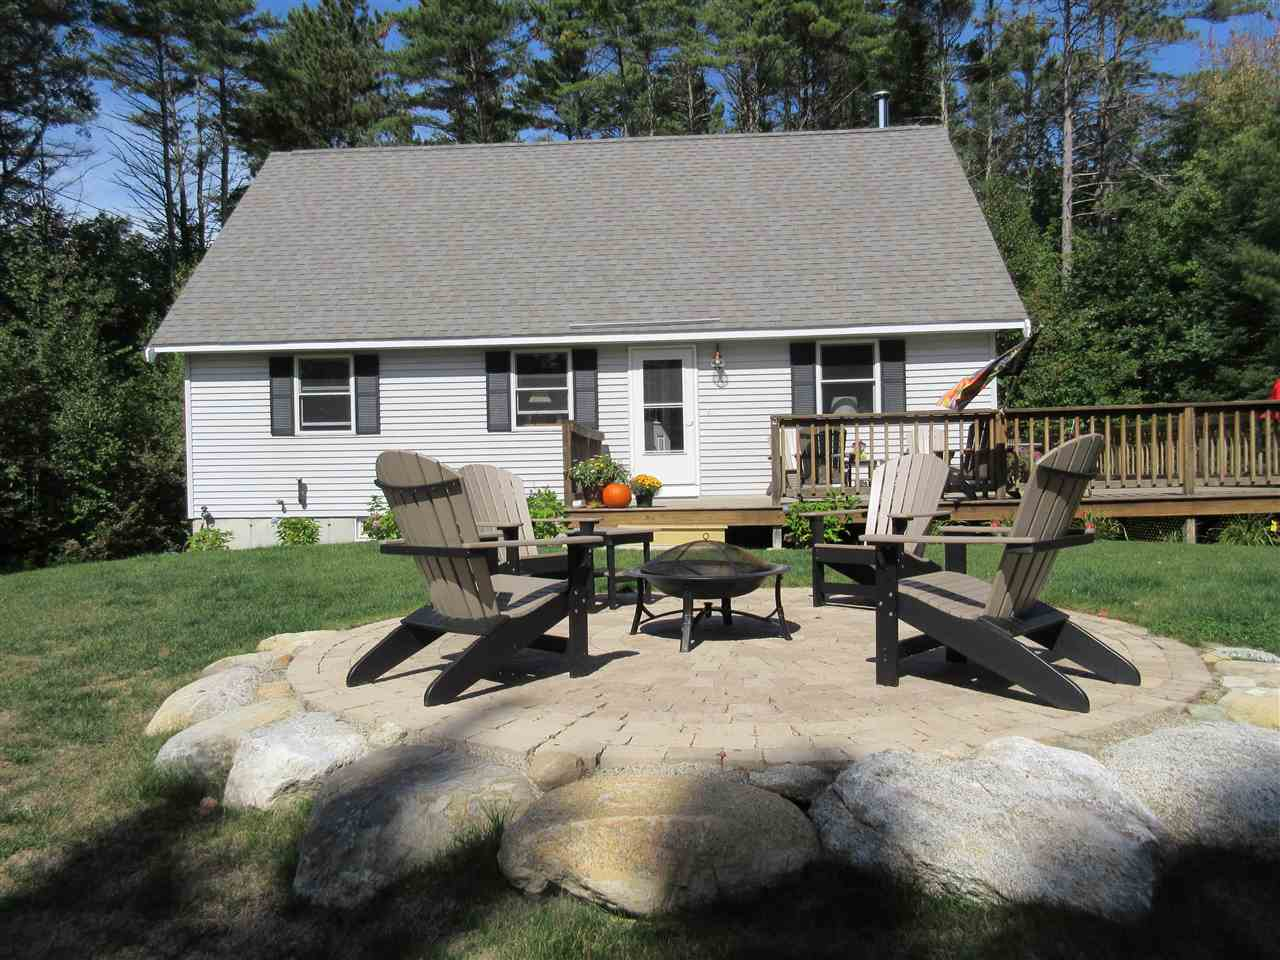 Village of Melvin Village in Town of Tuftonboro NH Home for sale $$229,000 $138 per sq.ft.